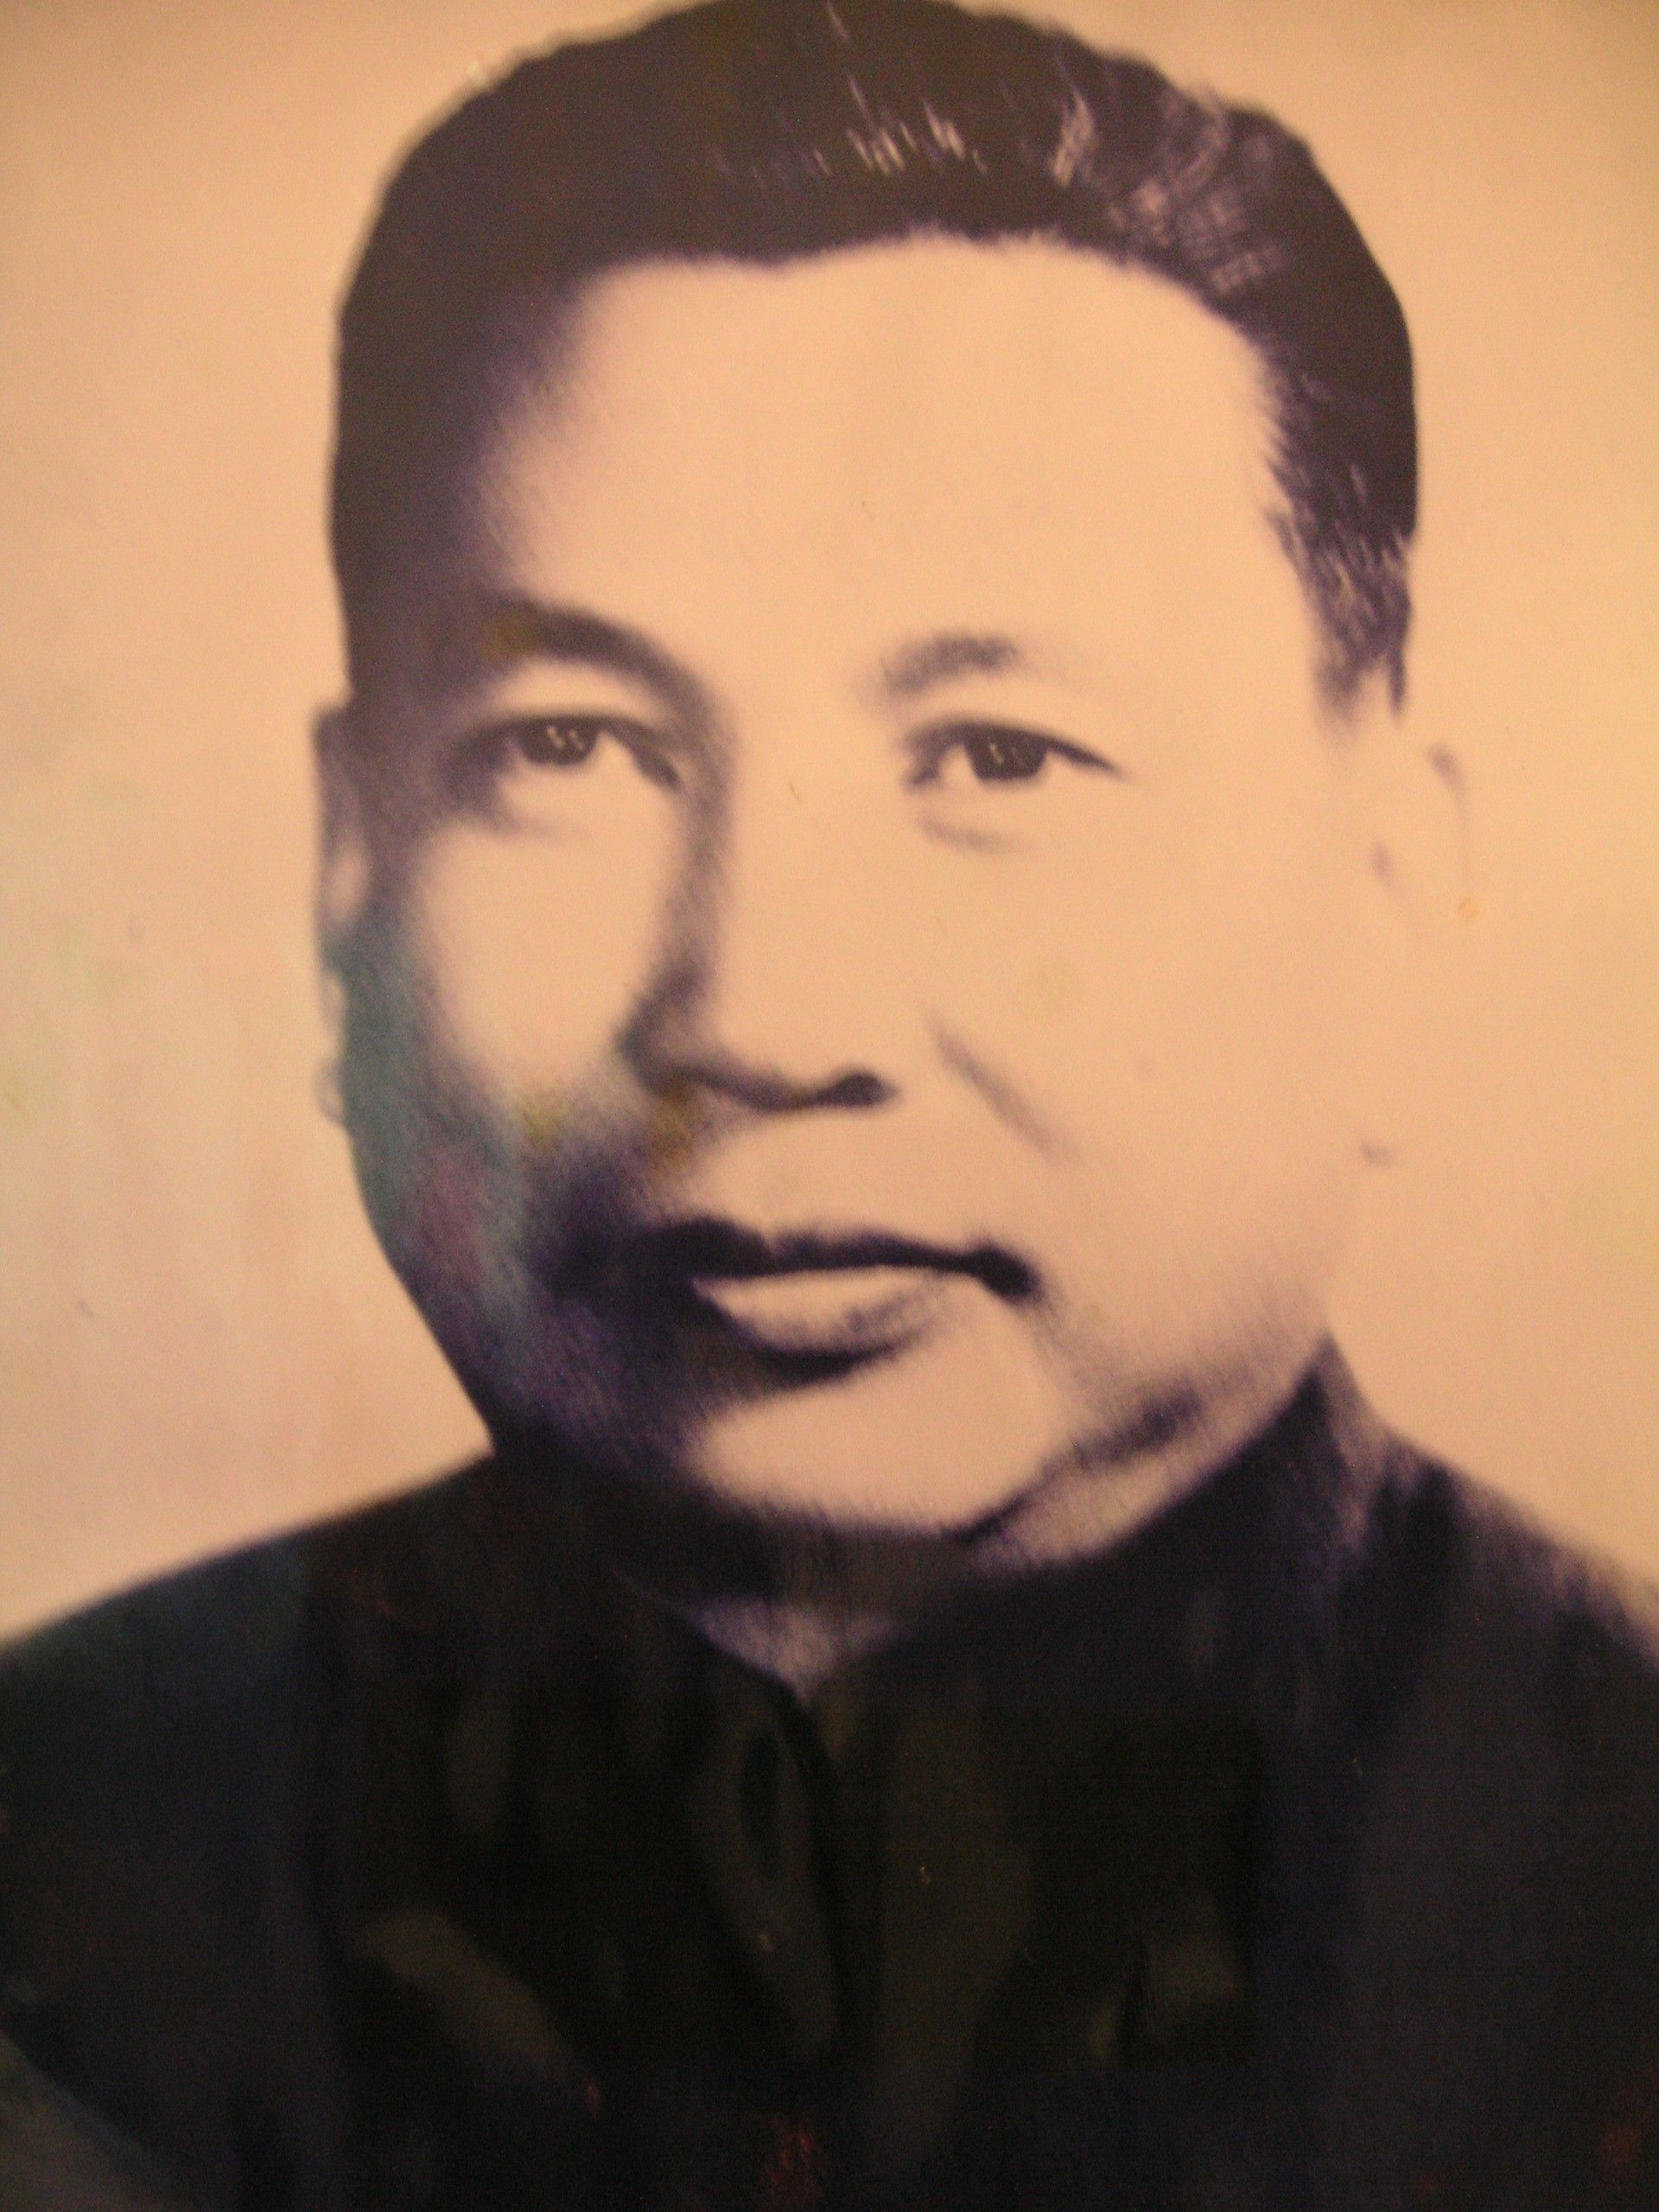 Pol Pot Quotes Prepossessing Pol Pot The Genocidal Leader Of The Khmer Rouge Was Responsible . Design Ideas